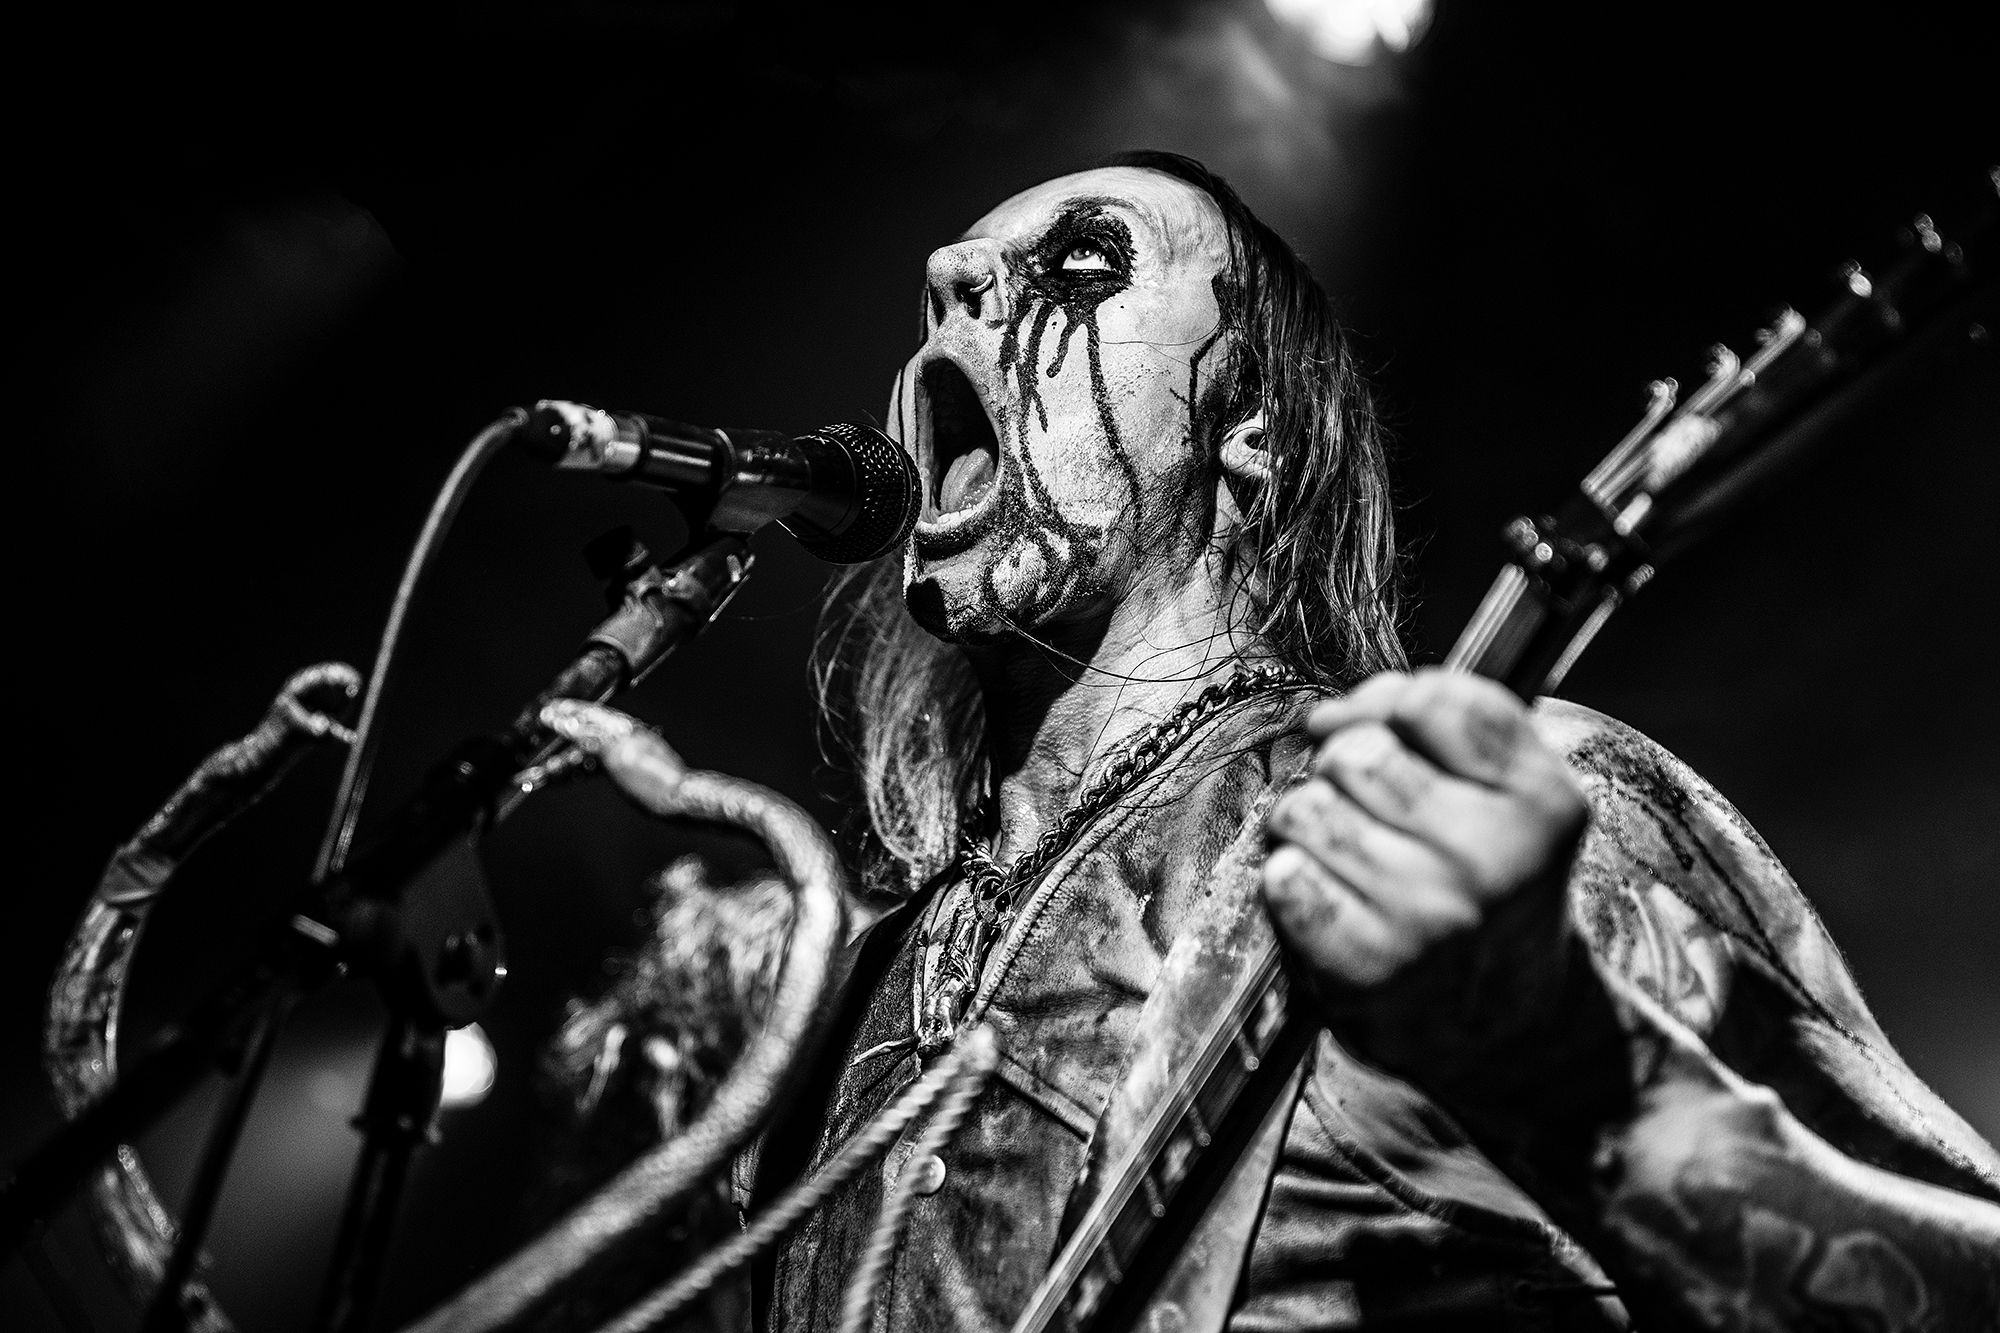 Belphegor at 1720, Los Angeles, CA  2019.06.15